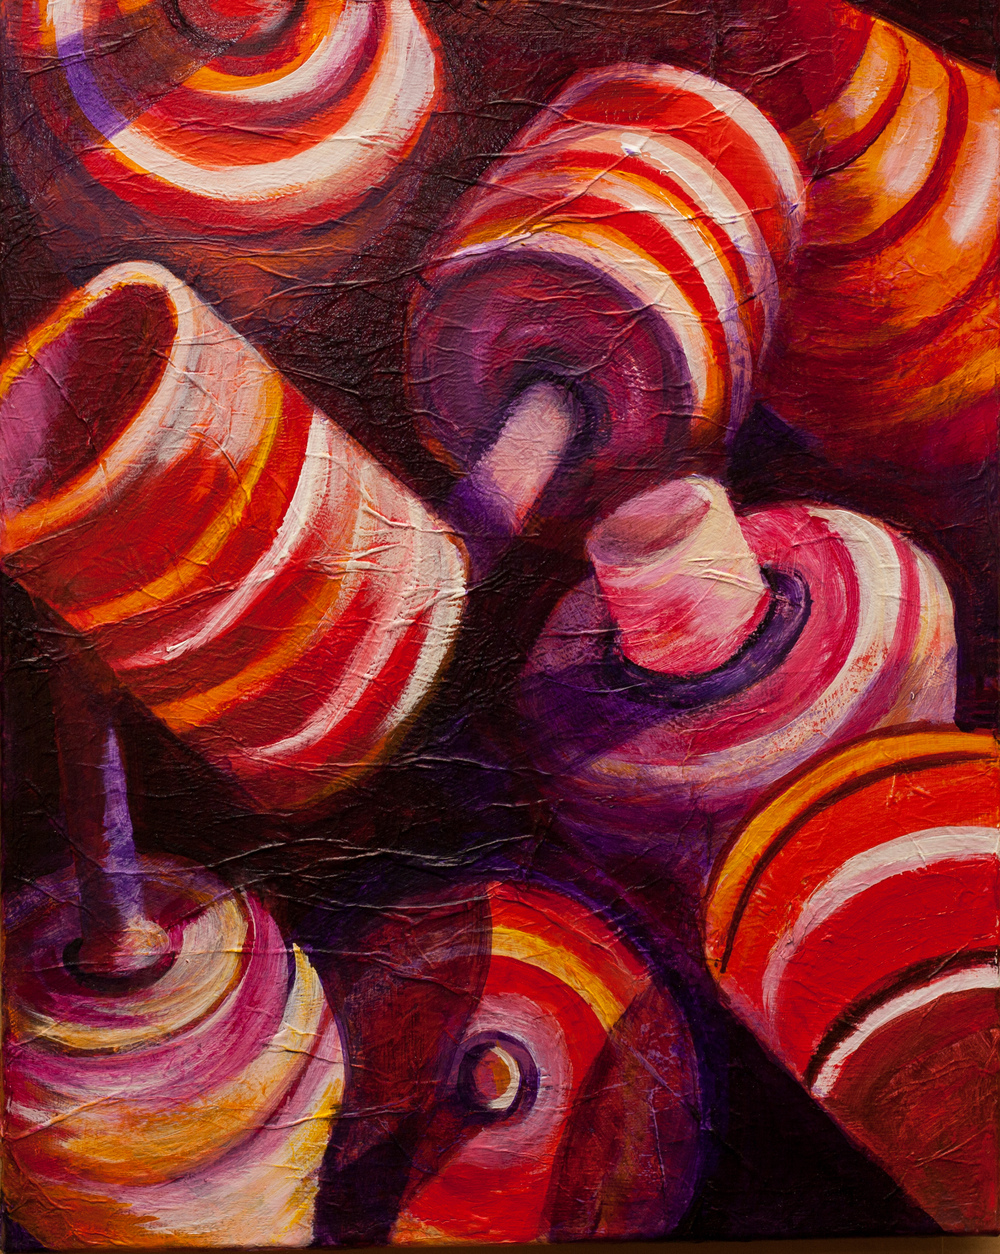 ZAPP No podria estar mas feliz (2)- Acrylic on canvas - 20x16 - Yancy Villa-Calvo.jpg